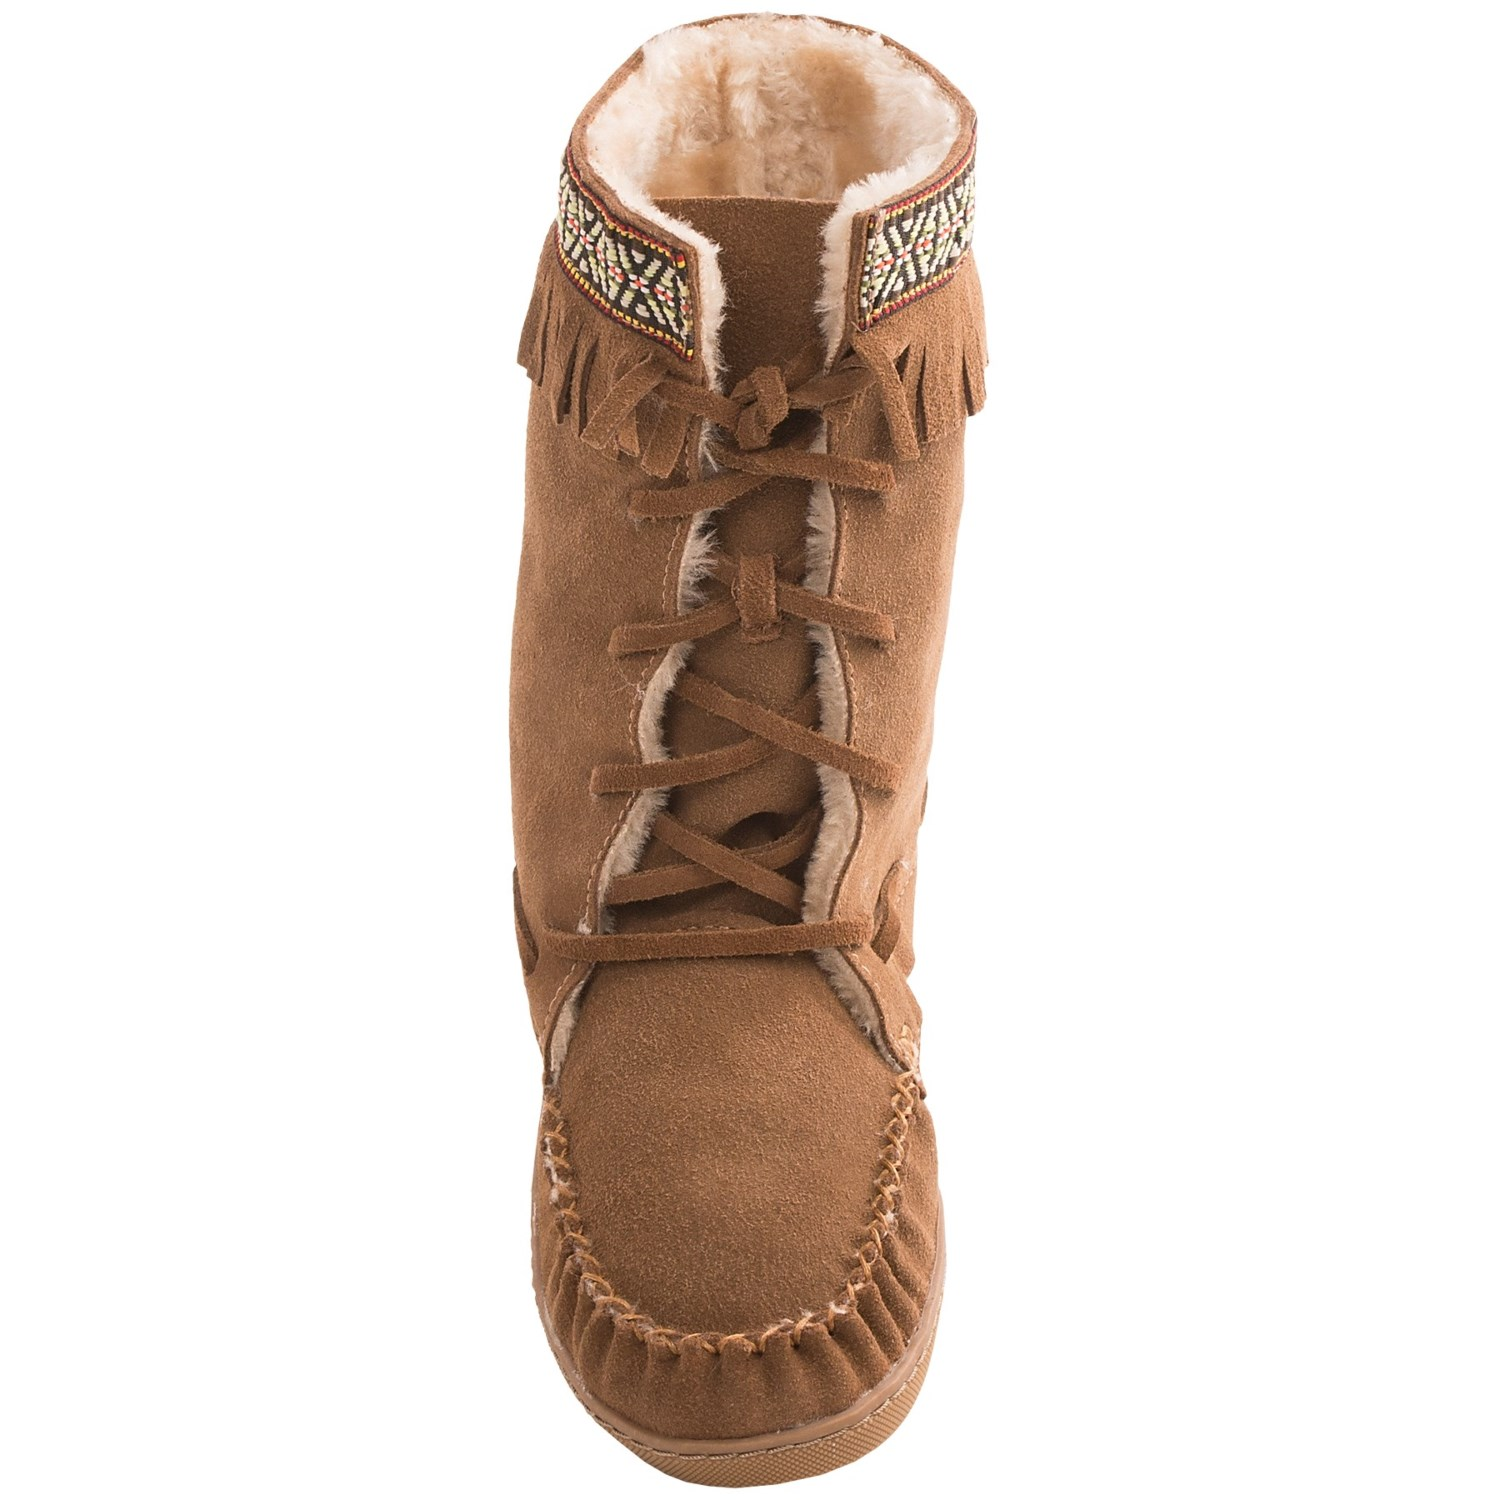 Grizzleez By Zigi Camper Moccasin Boots For Women 7959k